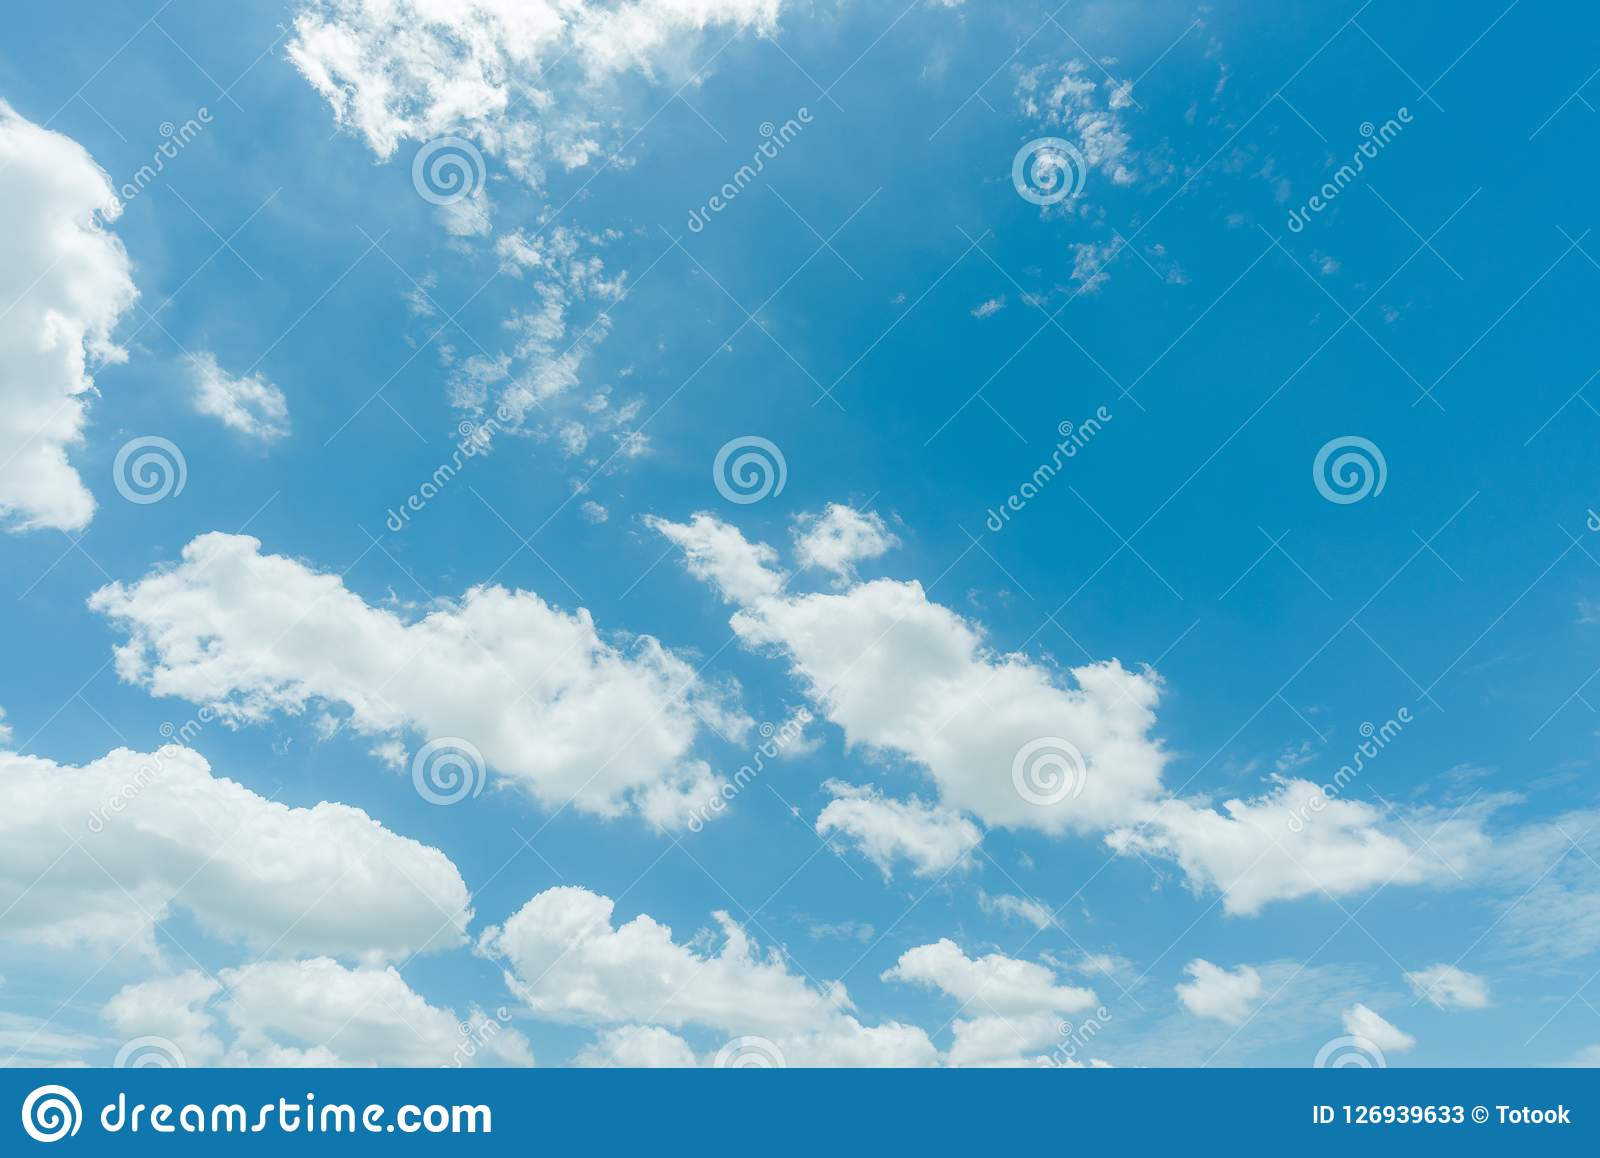 Clear blue sky background,clouds with background.  Stock Photos